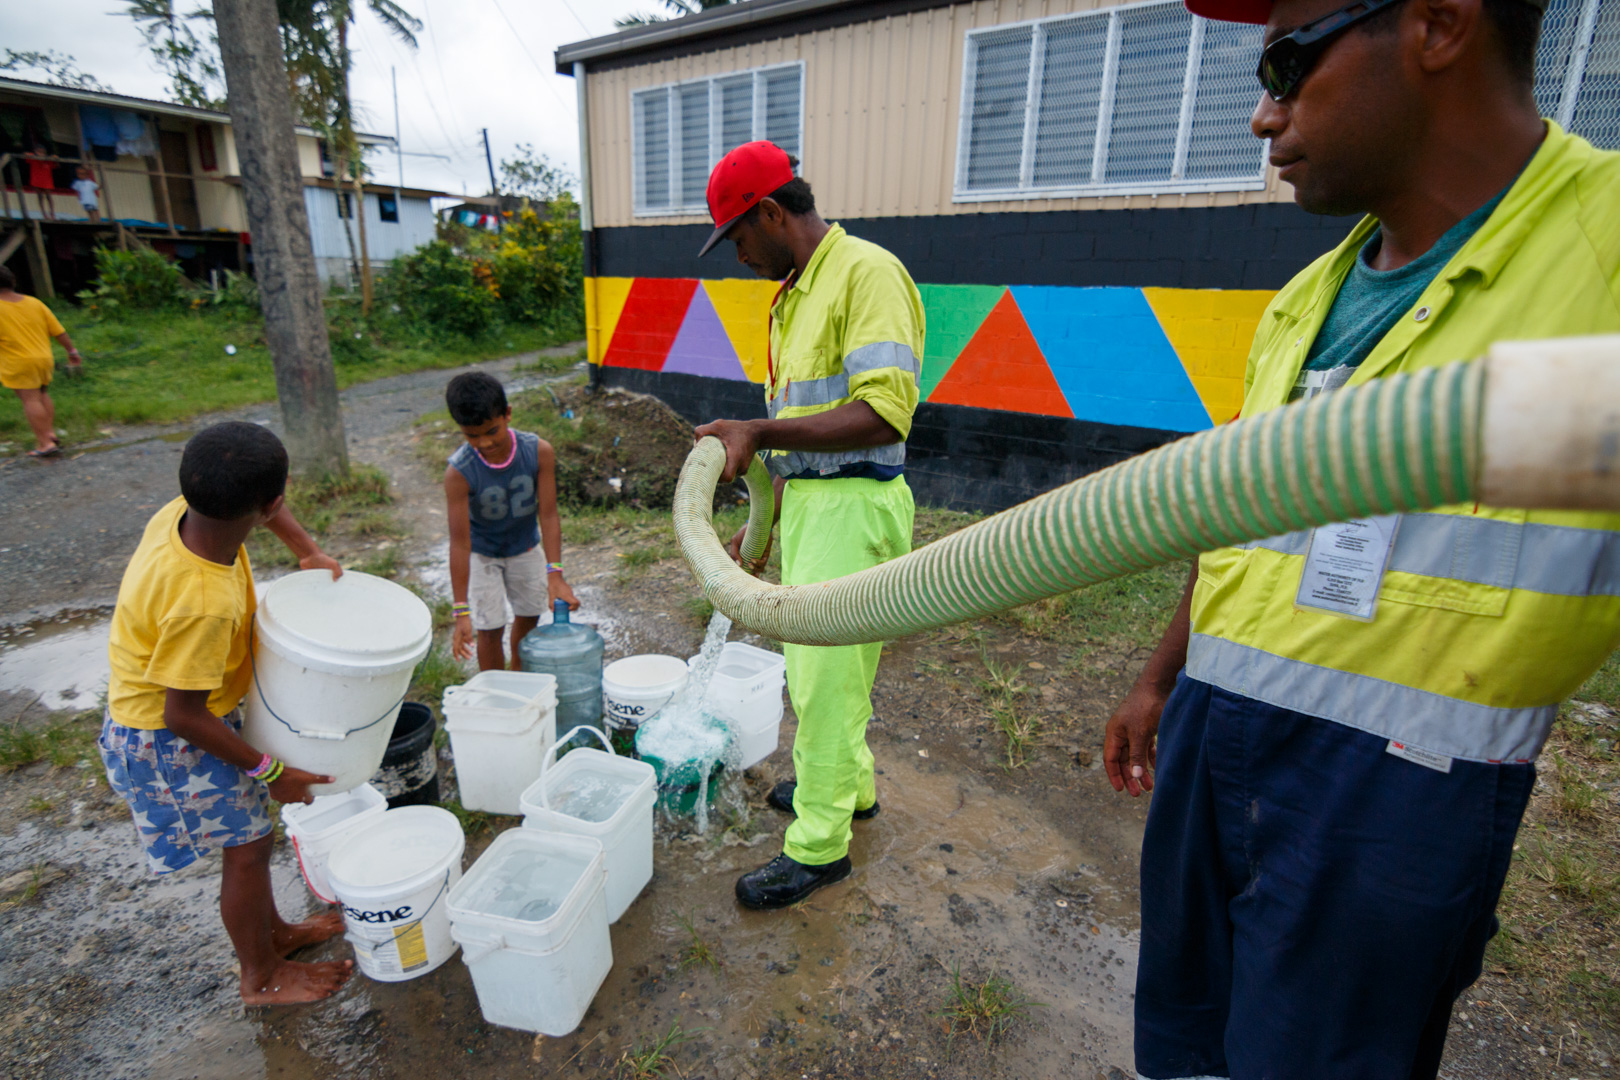 Workers from Suva's City Council fills residents' buckets with fresh water after power outages caused by Cyclone Winston stopped the pumps from working throughout Fiji's capital Suva, February 23, 2016.